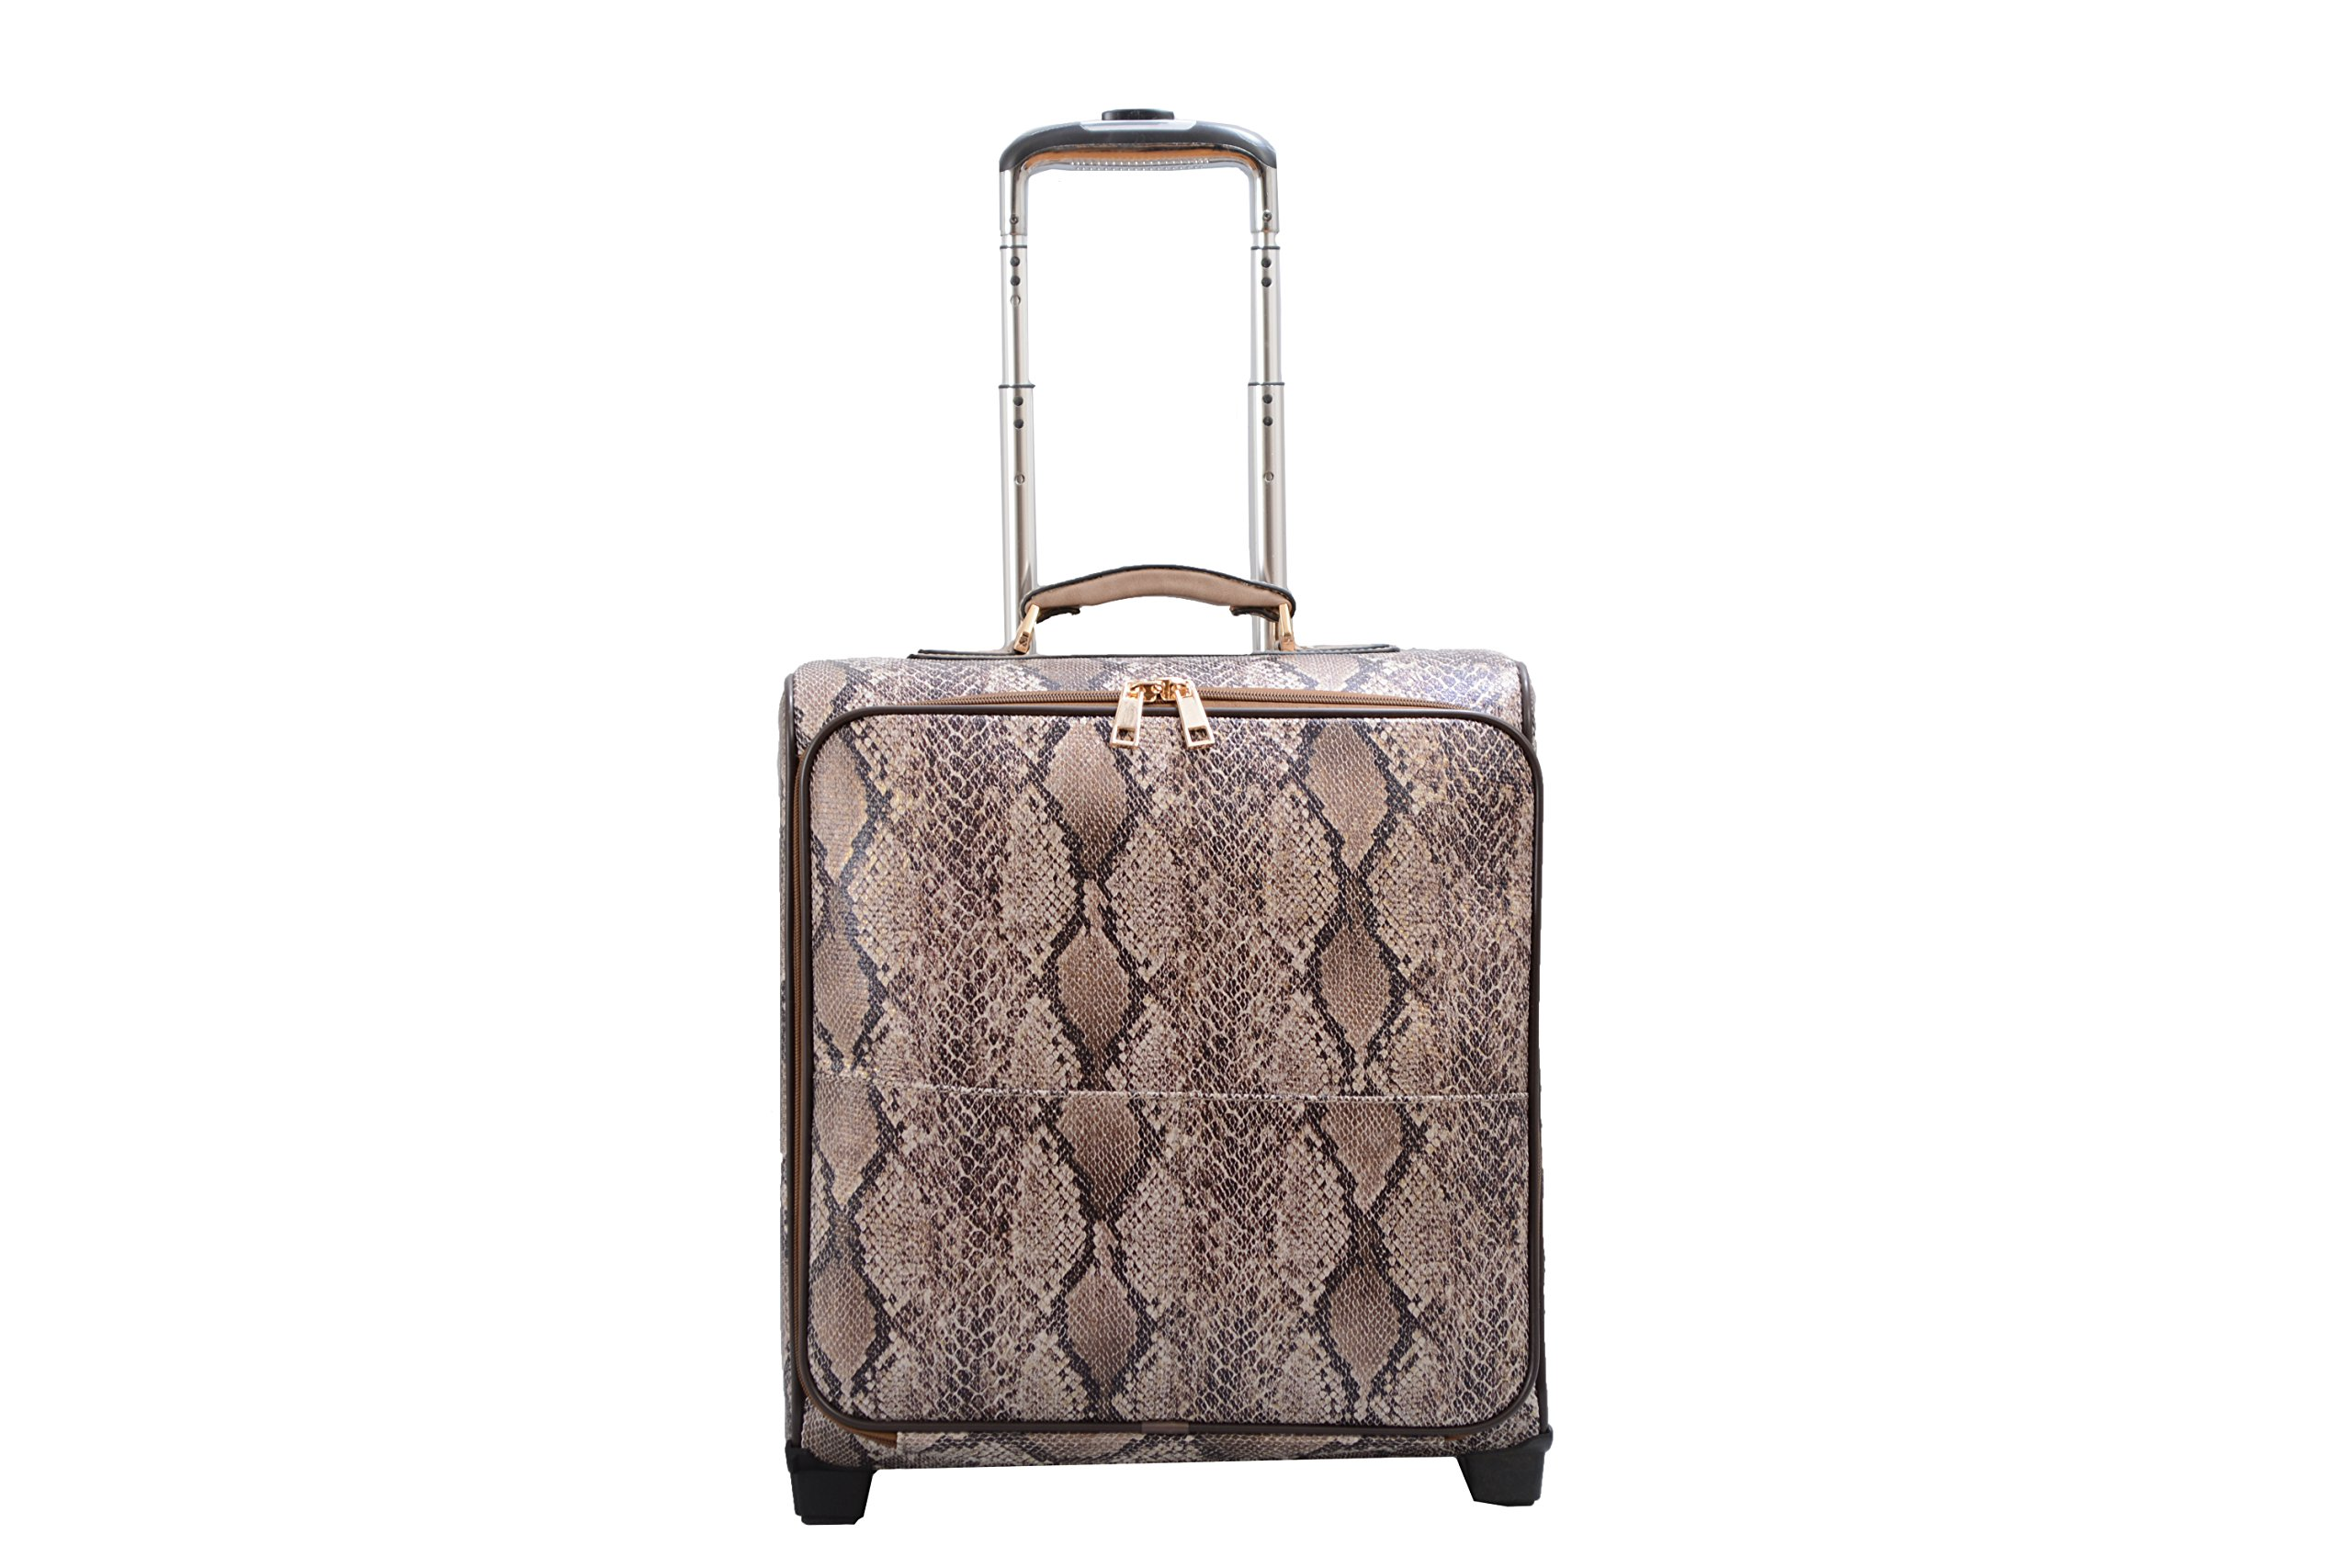 Mellow World Fashion Rogue Carry-on Rolling Suitcase, Khaki by Mellow World